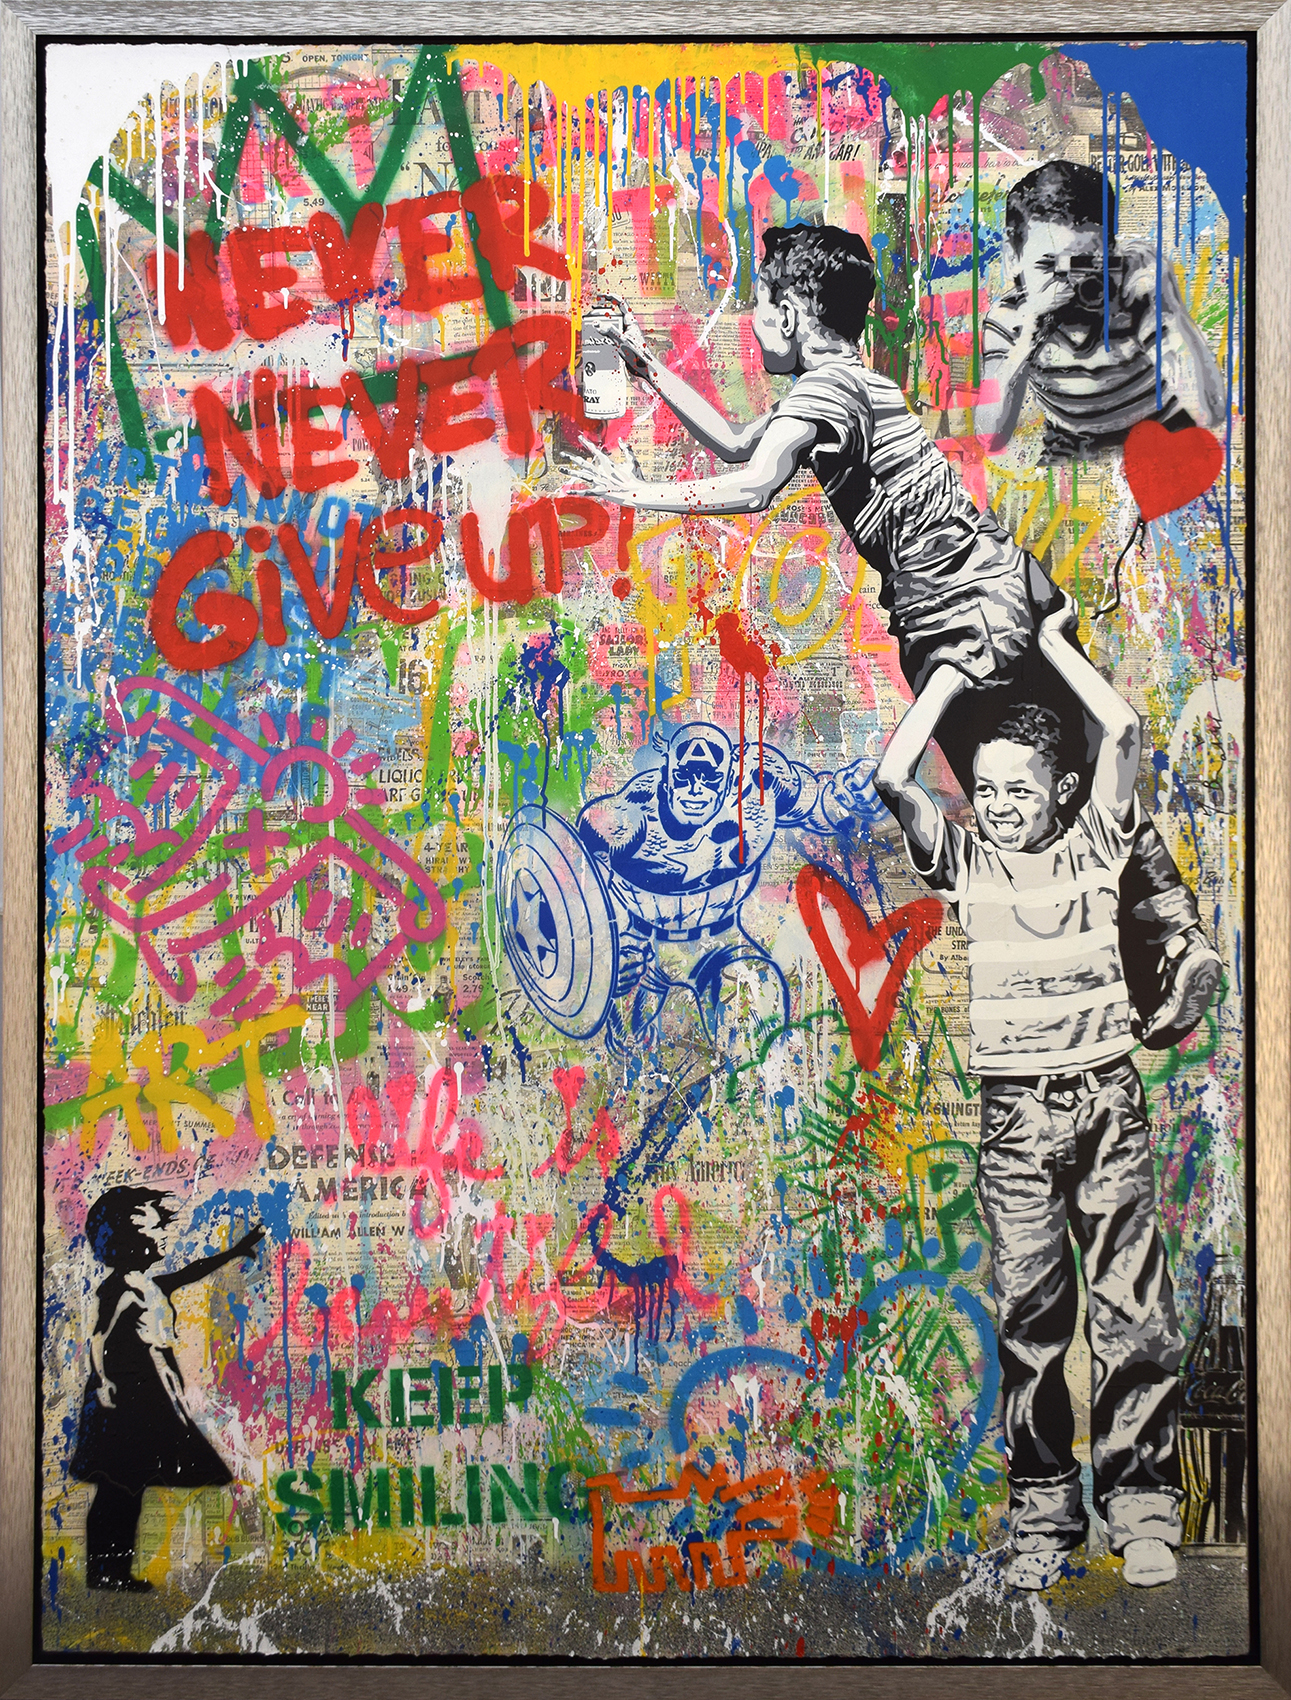 Mr. Brainwash - Never, never give up! (with Balloon Girl) , 9003-012-152